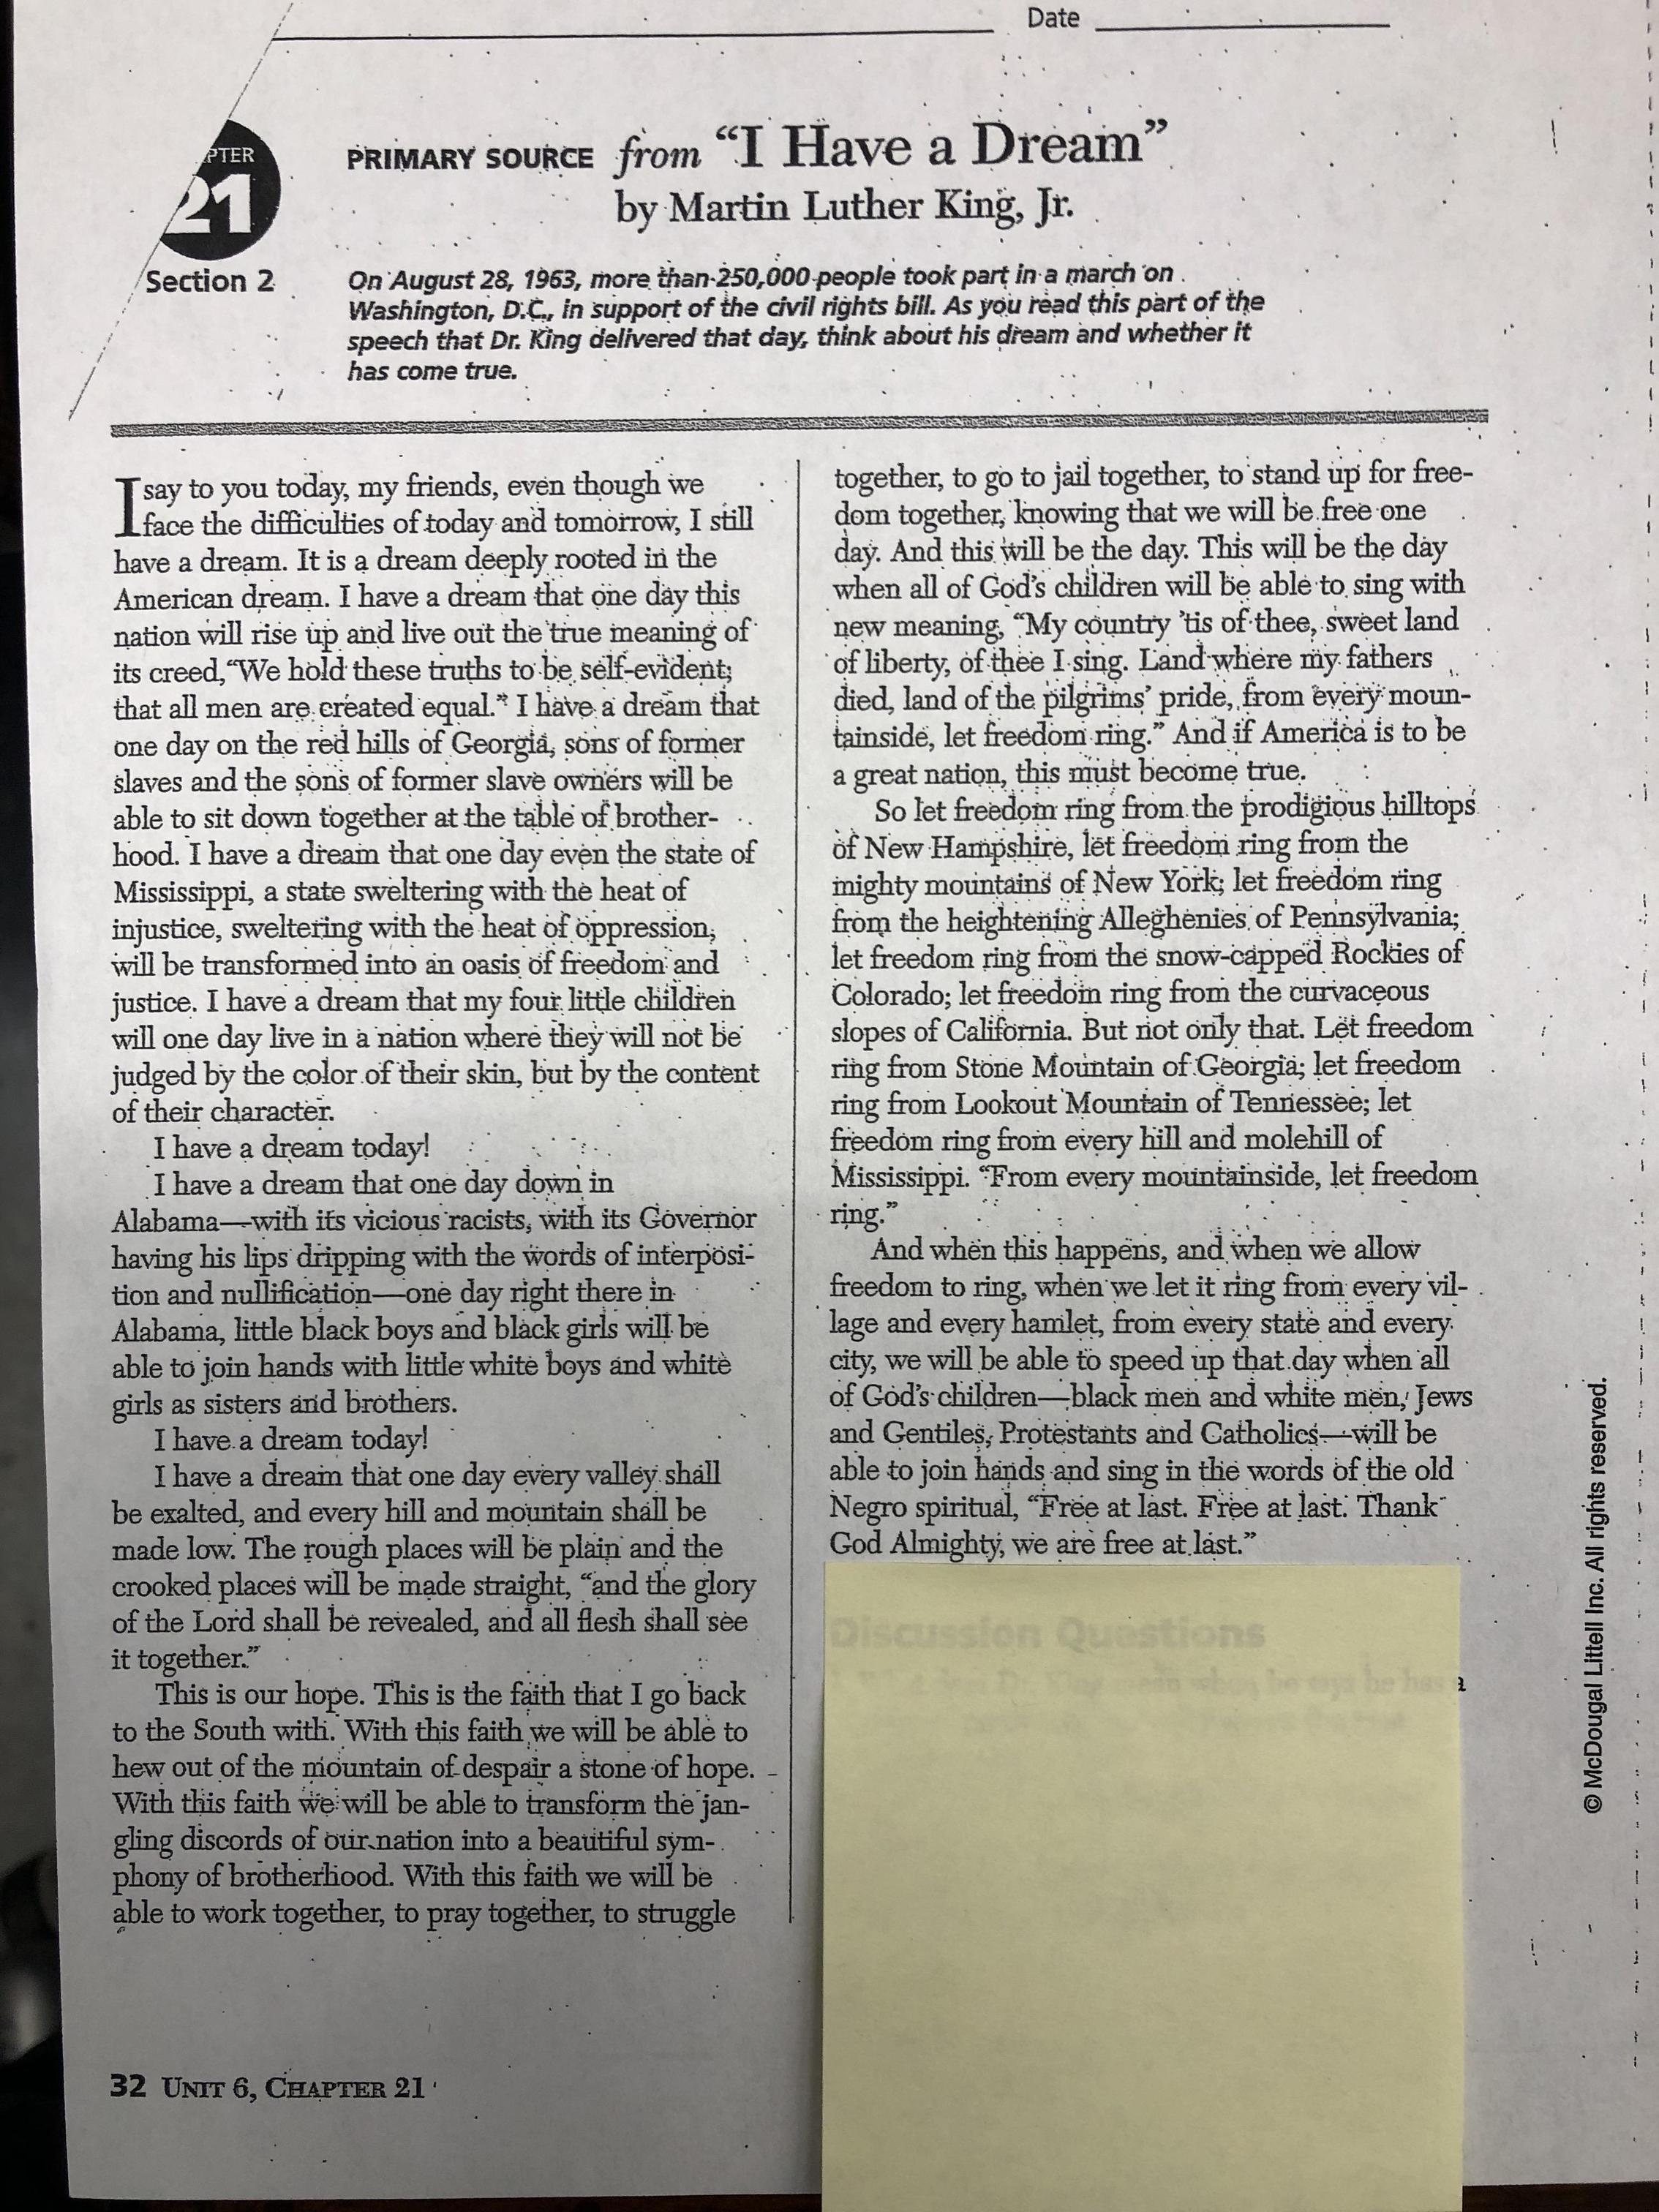 America The Story Of Us Civil War Worksheet Answers